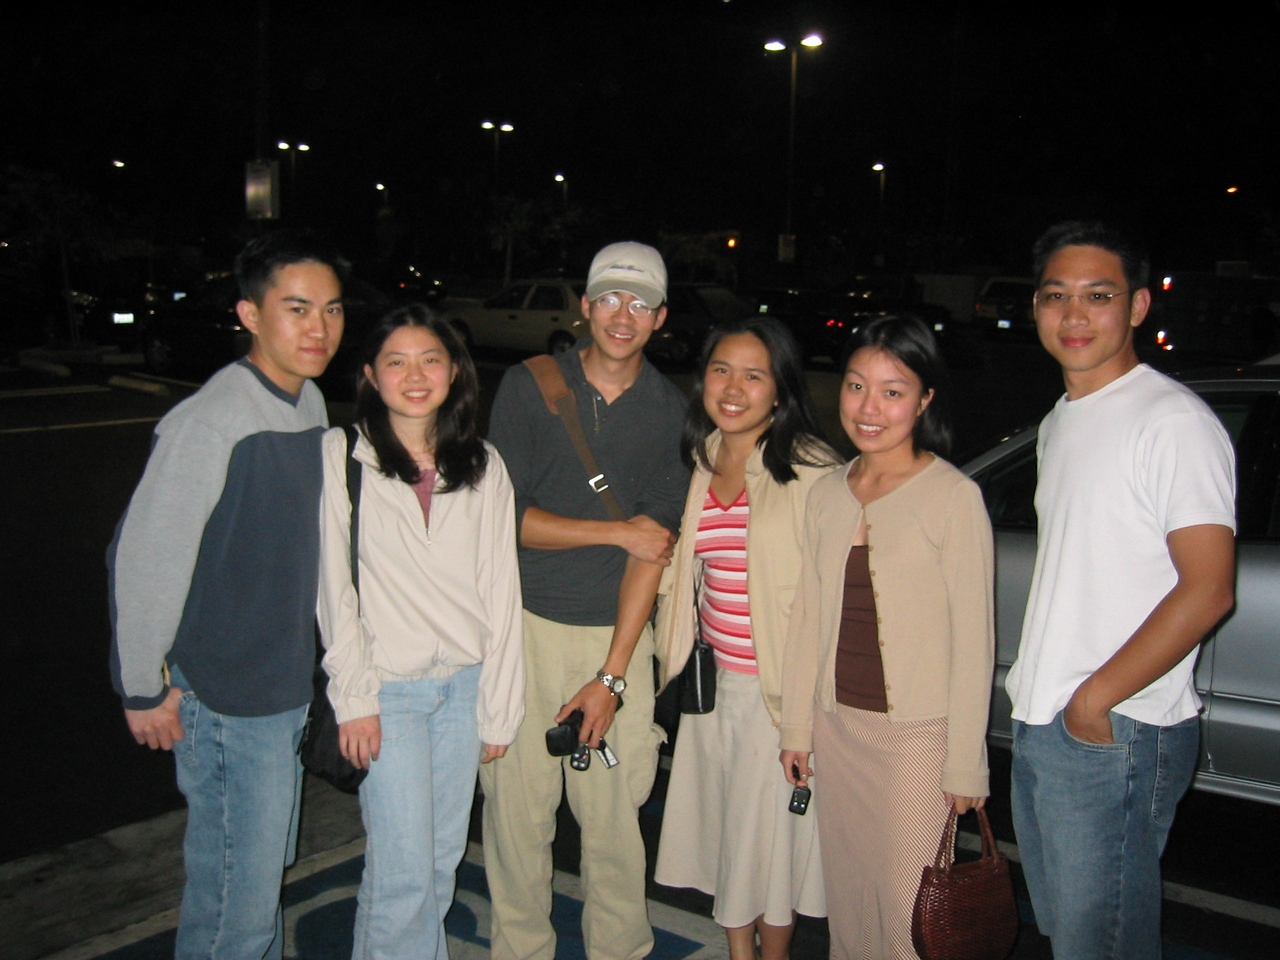 Group pic after crepes @ Alhambra, Monday 6 2 2003